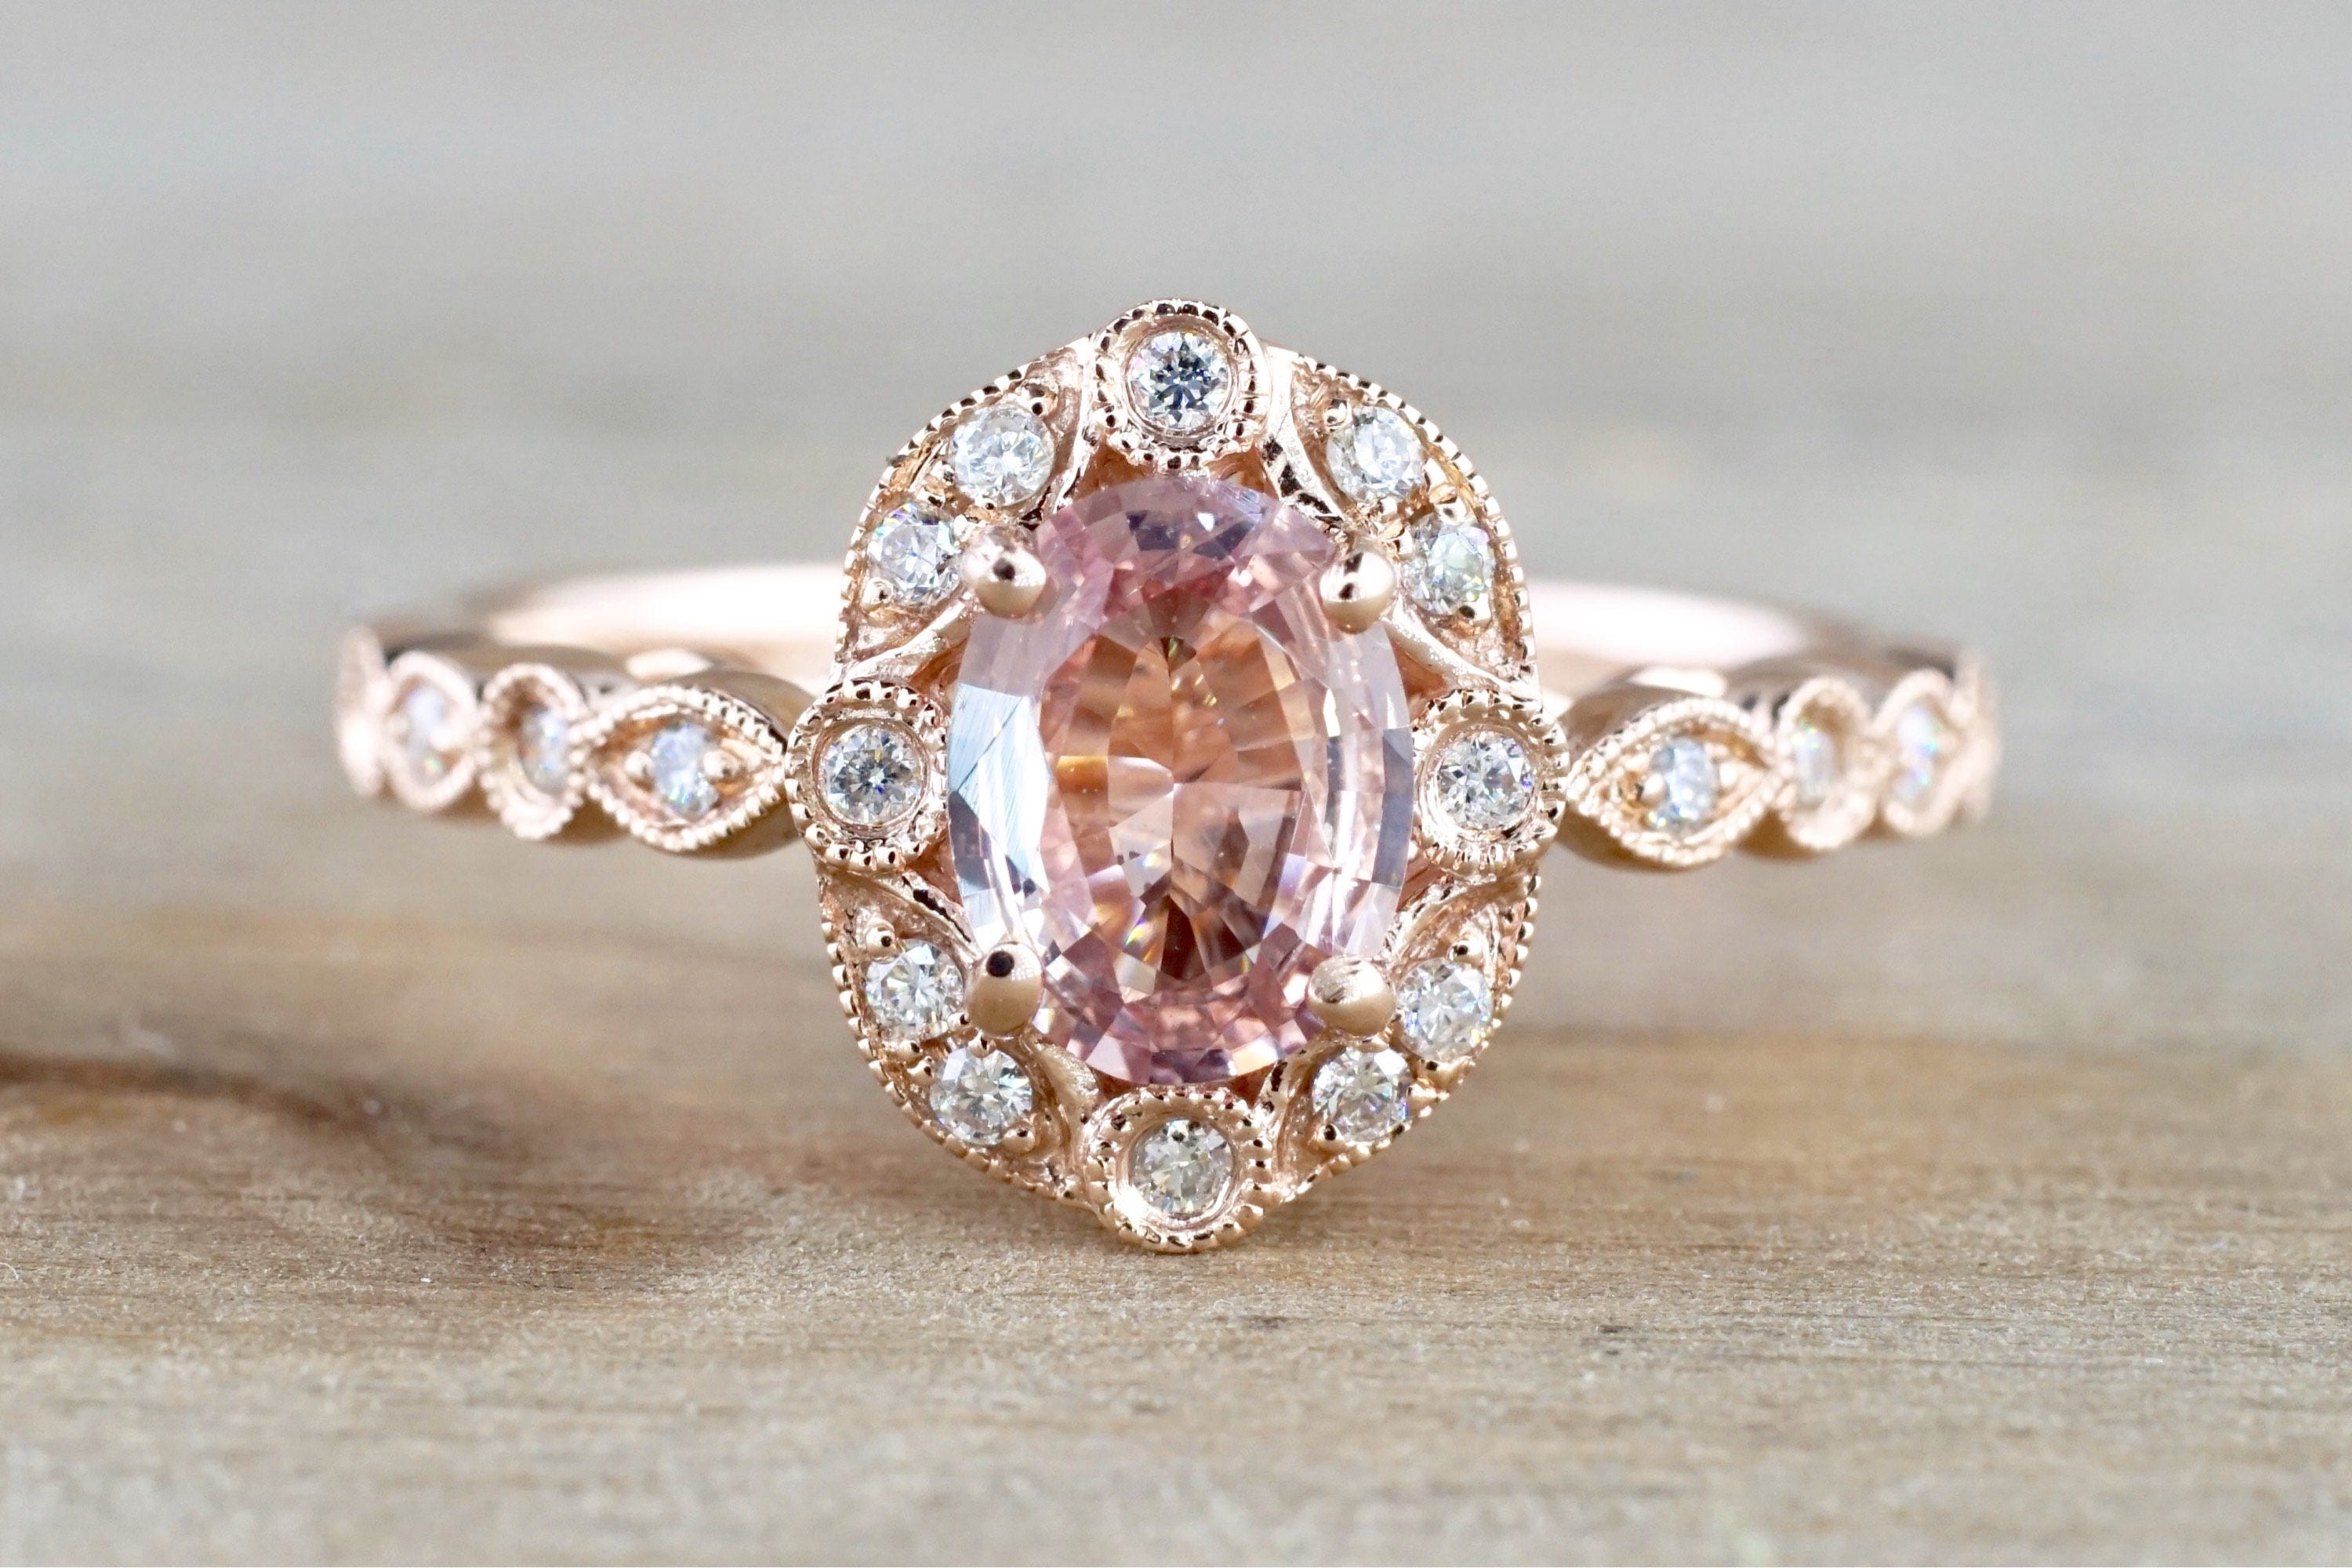 ring art unheated deco gold halo shaped vintage pear products org rose sapphire engagement diamond peach light